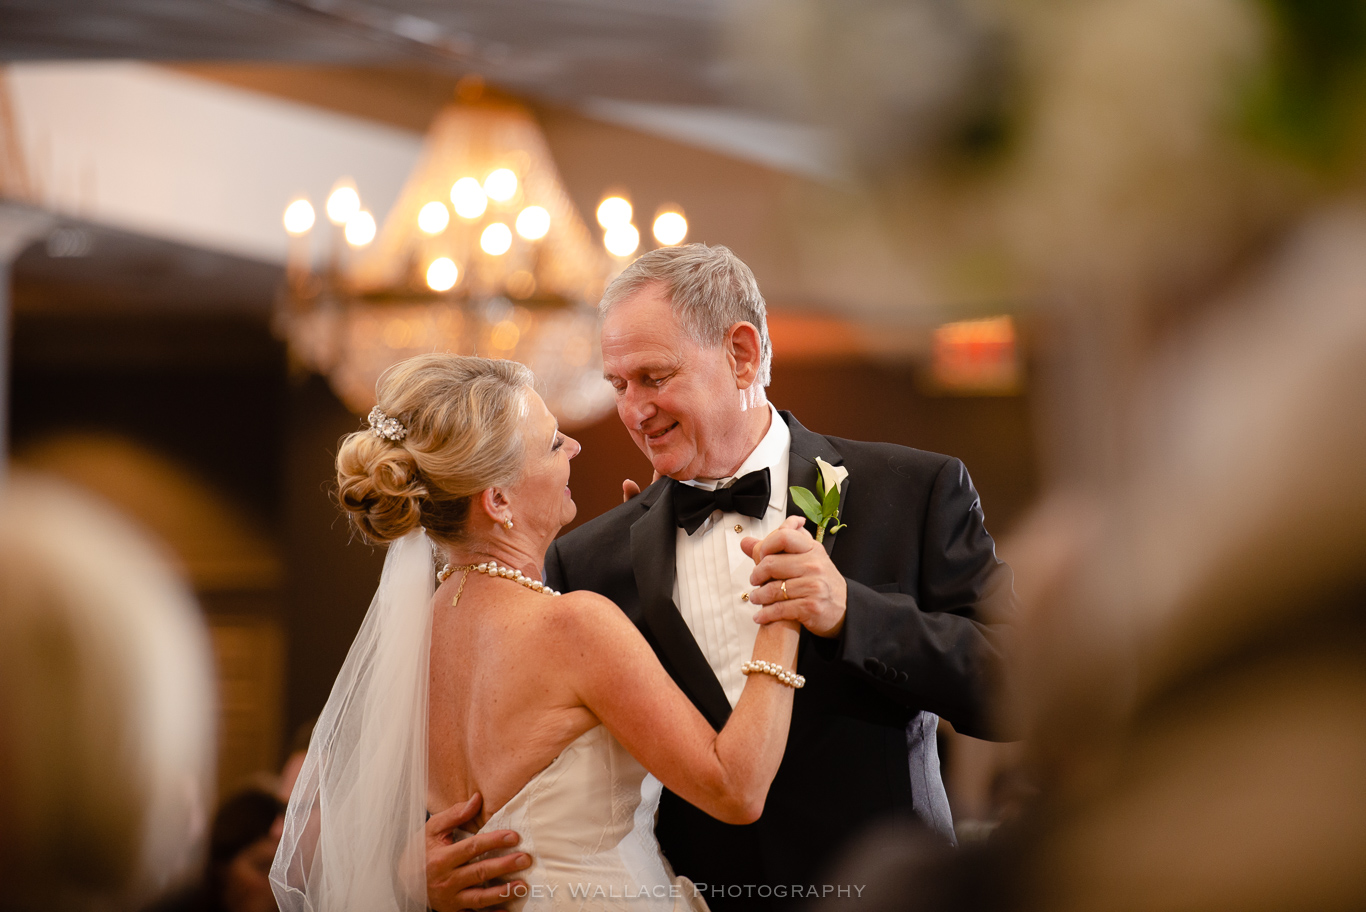 First dance at Wedding Reception At The Eagles Landing Country Club